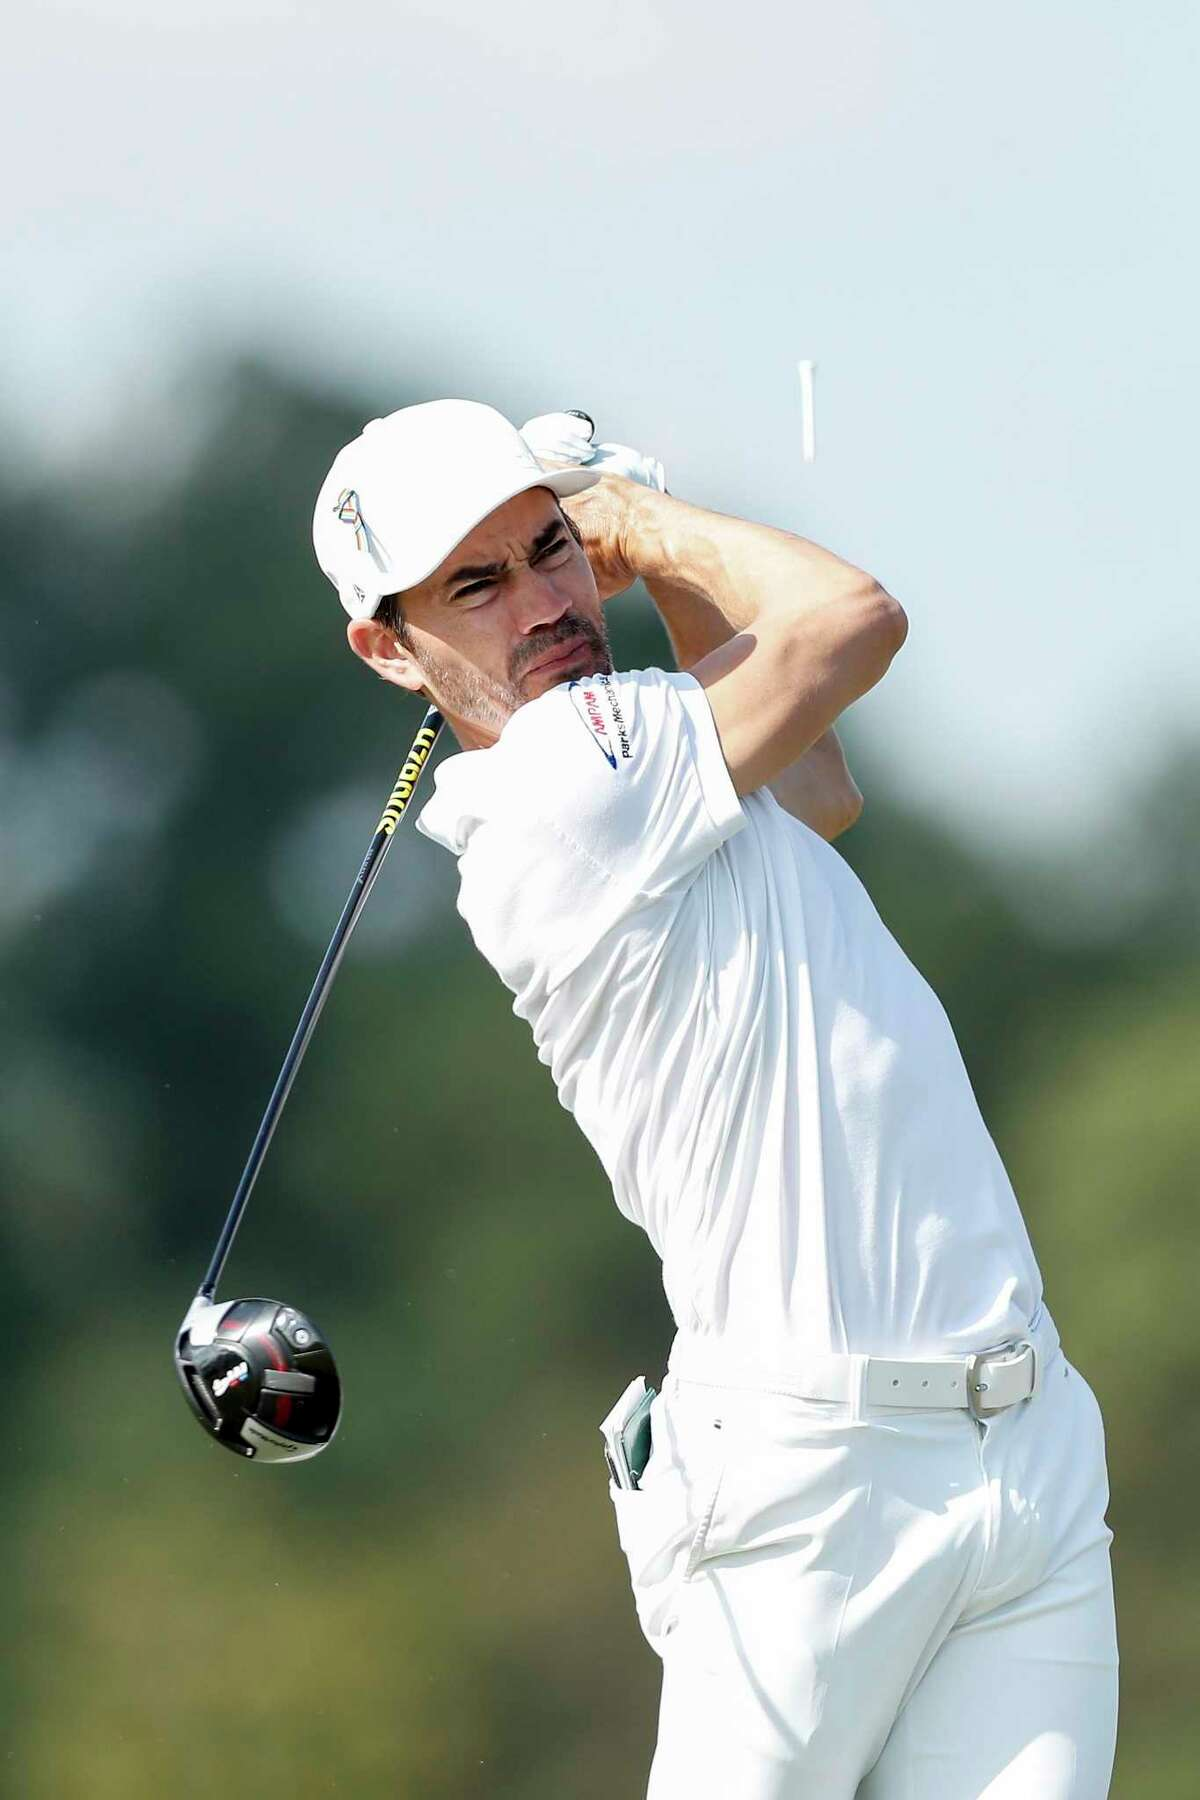 Camilo Villegas plays his shot from the 18th tee during the second round of the Vivint Houston Open at Memorial Park Golf Course on Friday, November 6, 2020.